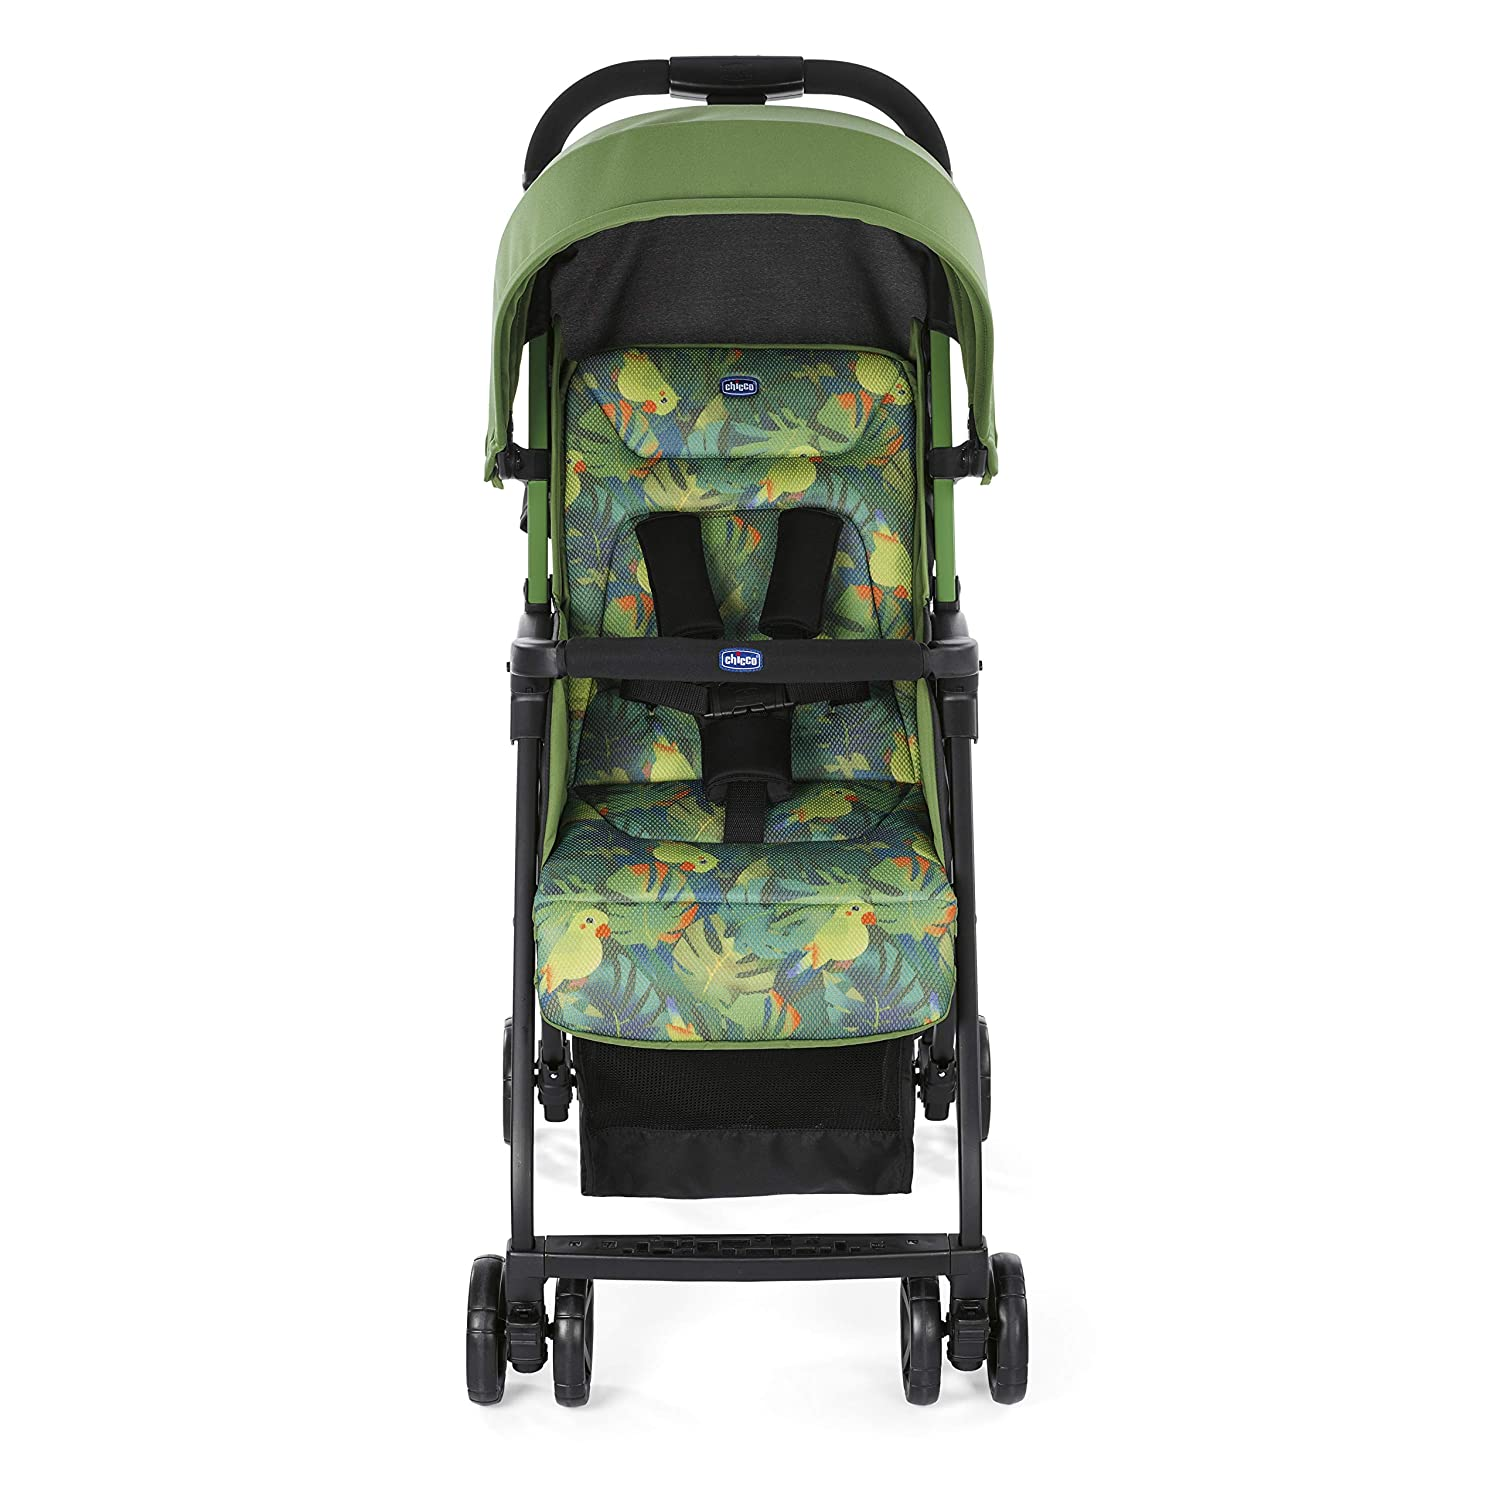 Amazon.com : Chicco Ohlalà Lightweight Stroller Tropical Jungle ...